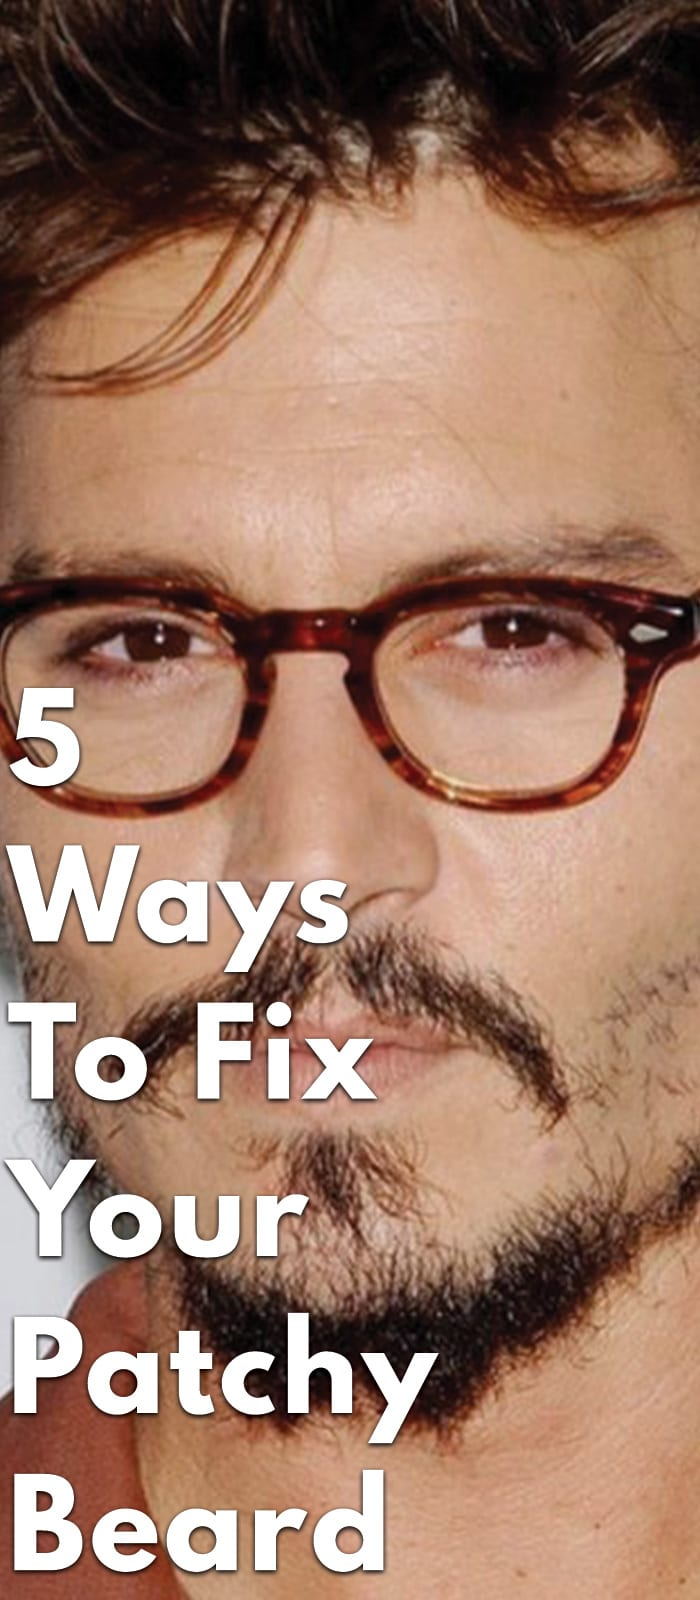 5-Ways-To-Fix-Your-Patchy-Beard